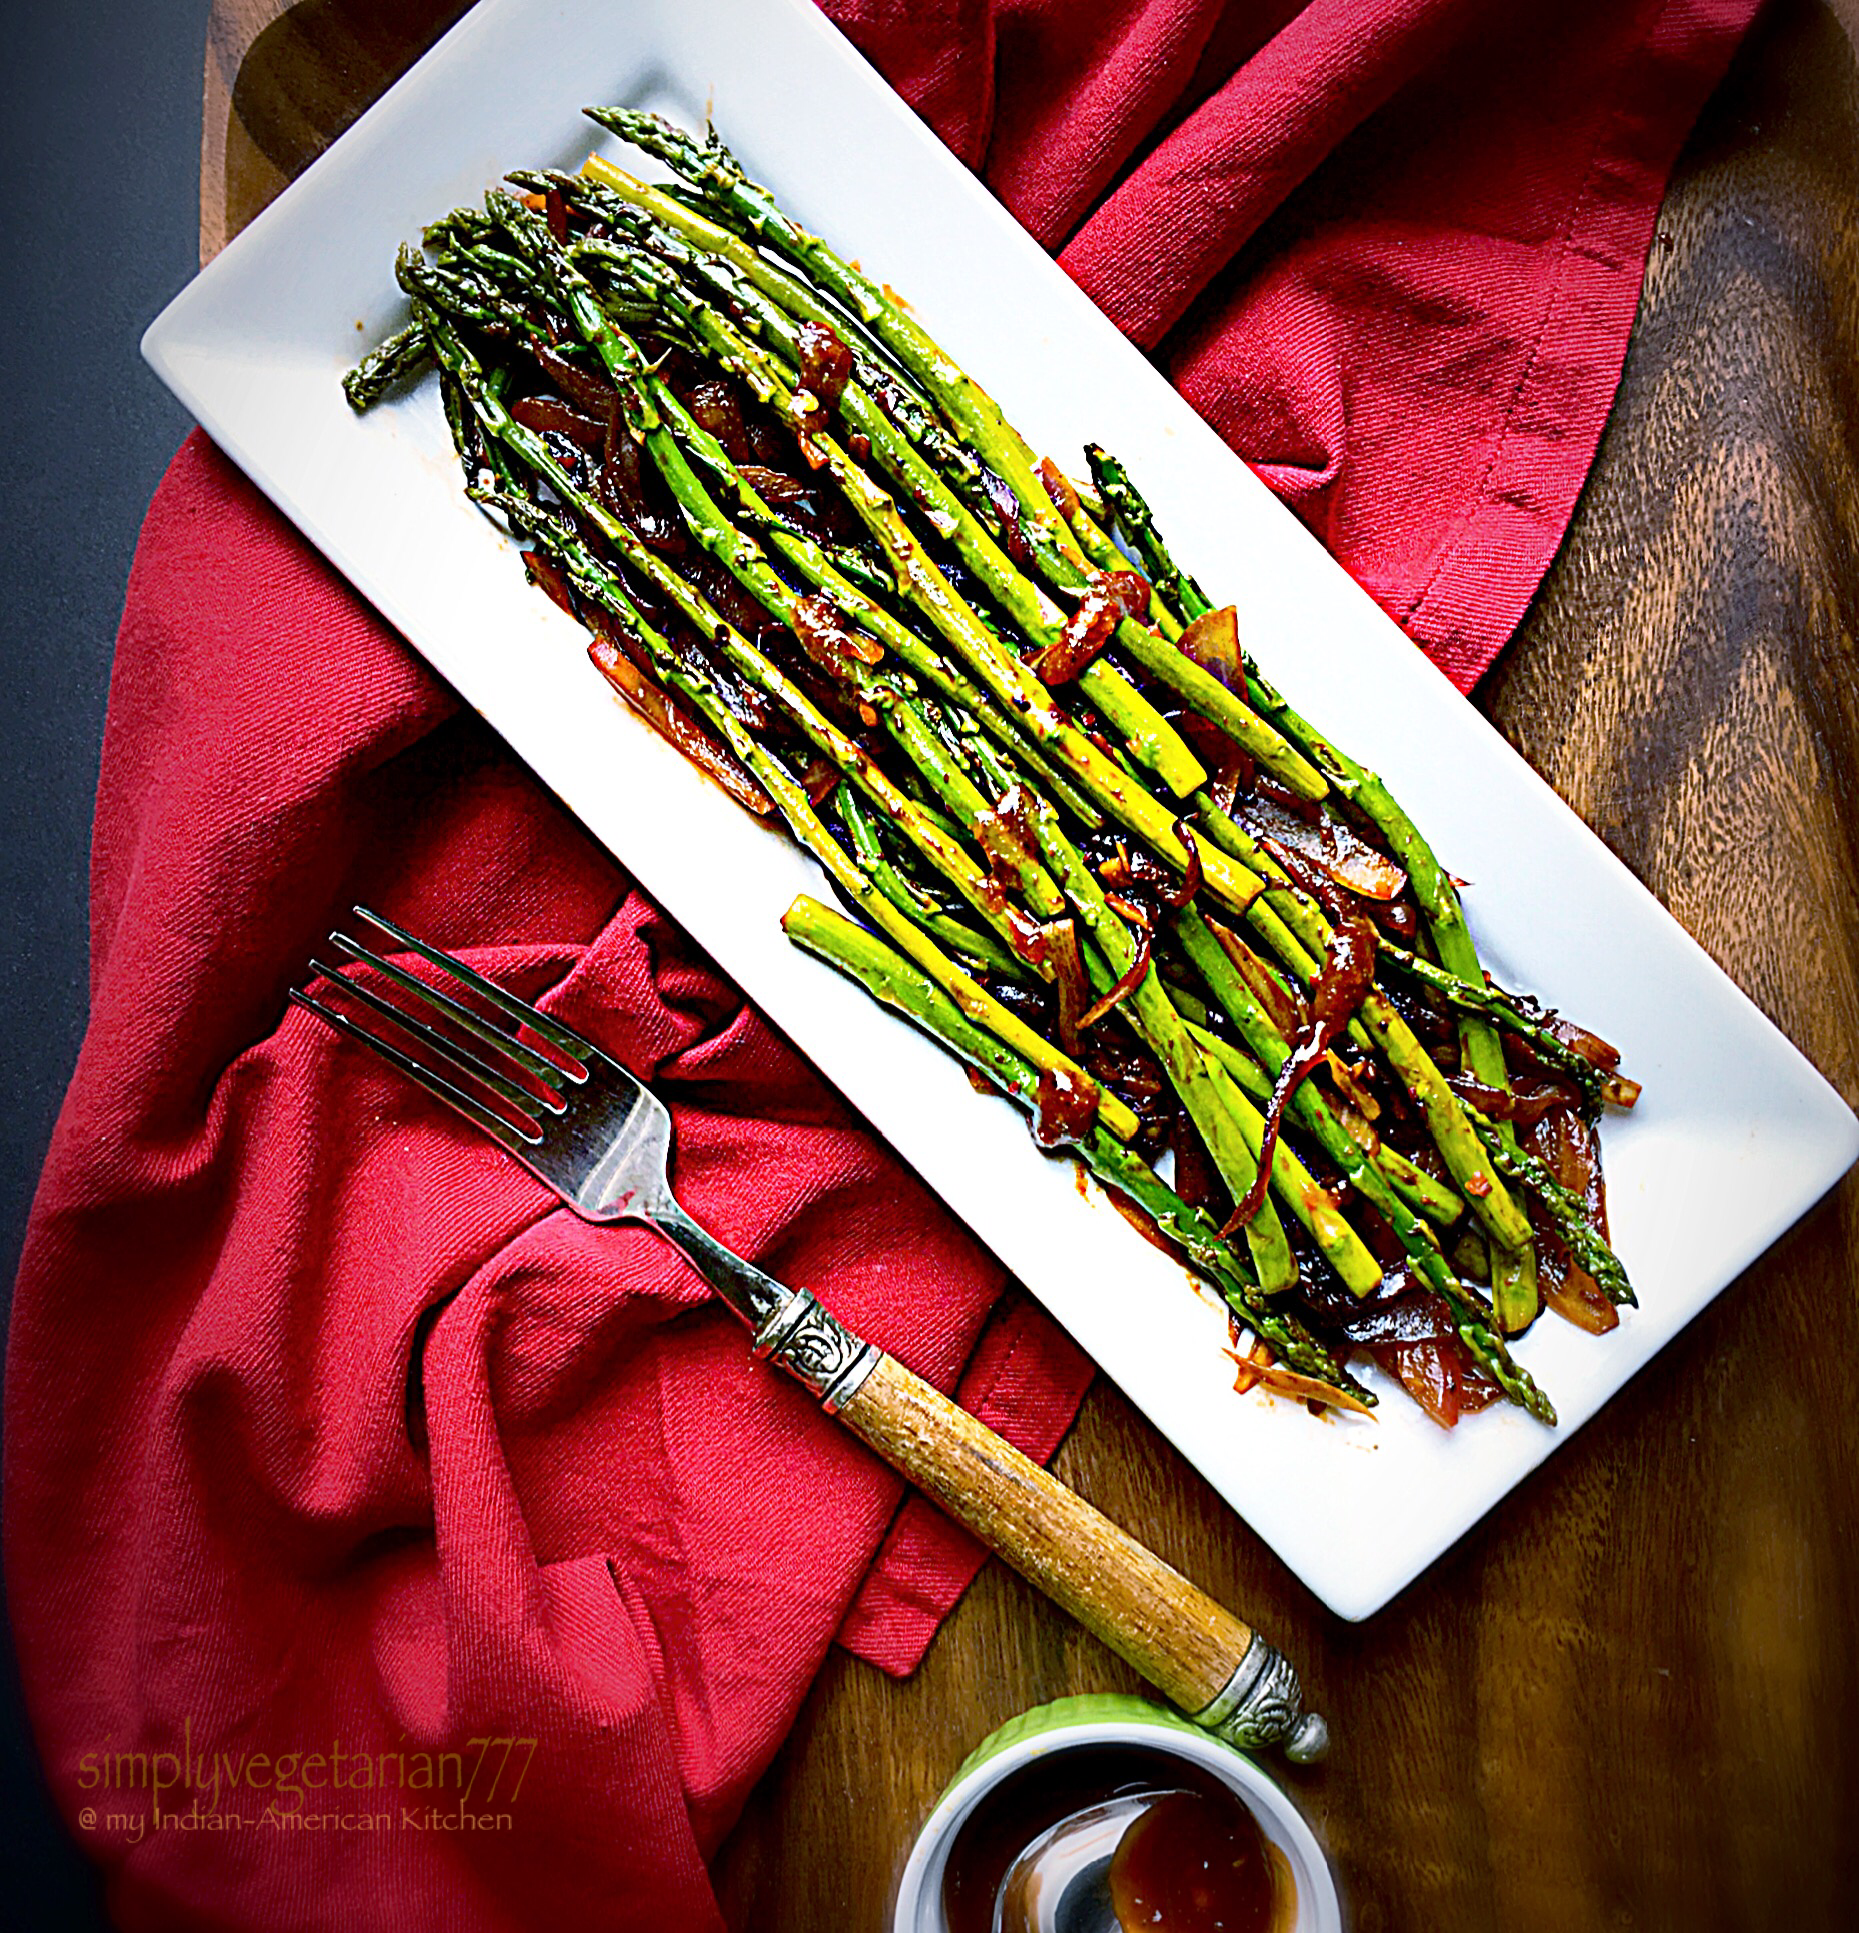 Pan Grilled Asparagus in Barbecue Sauce